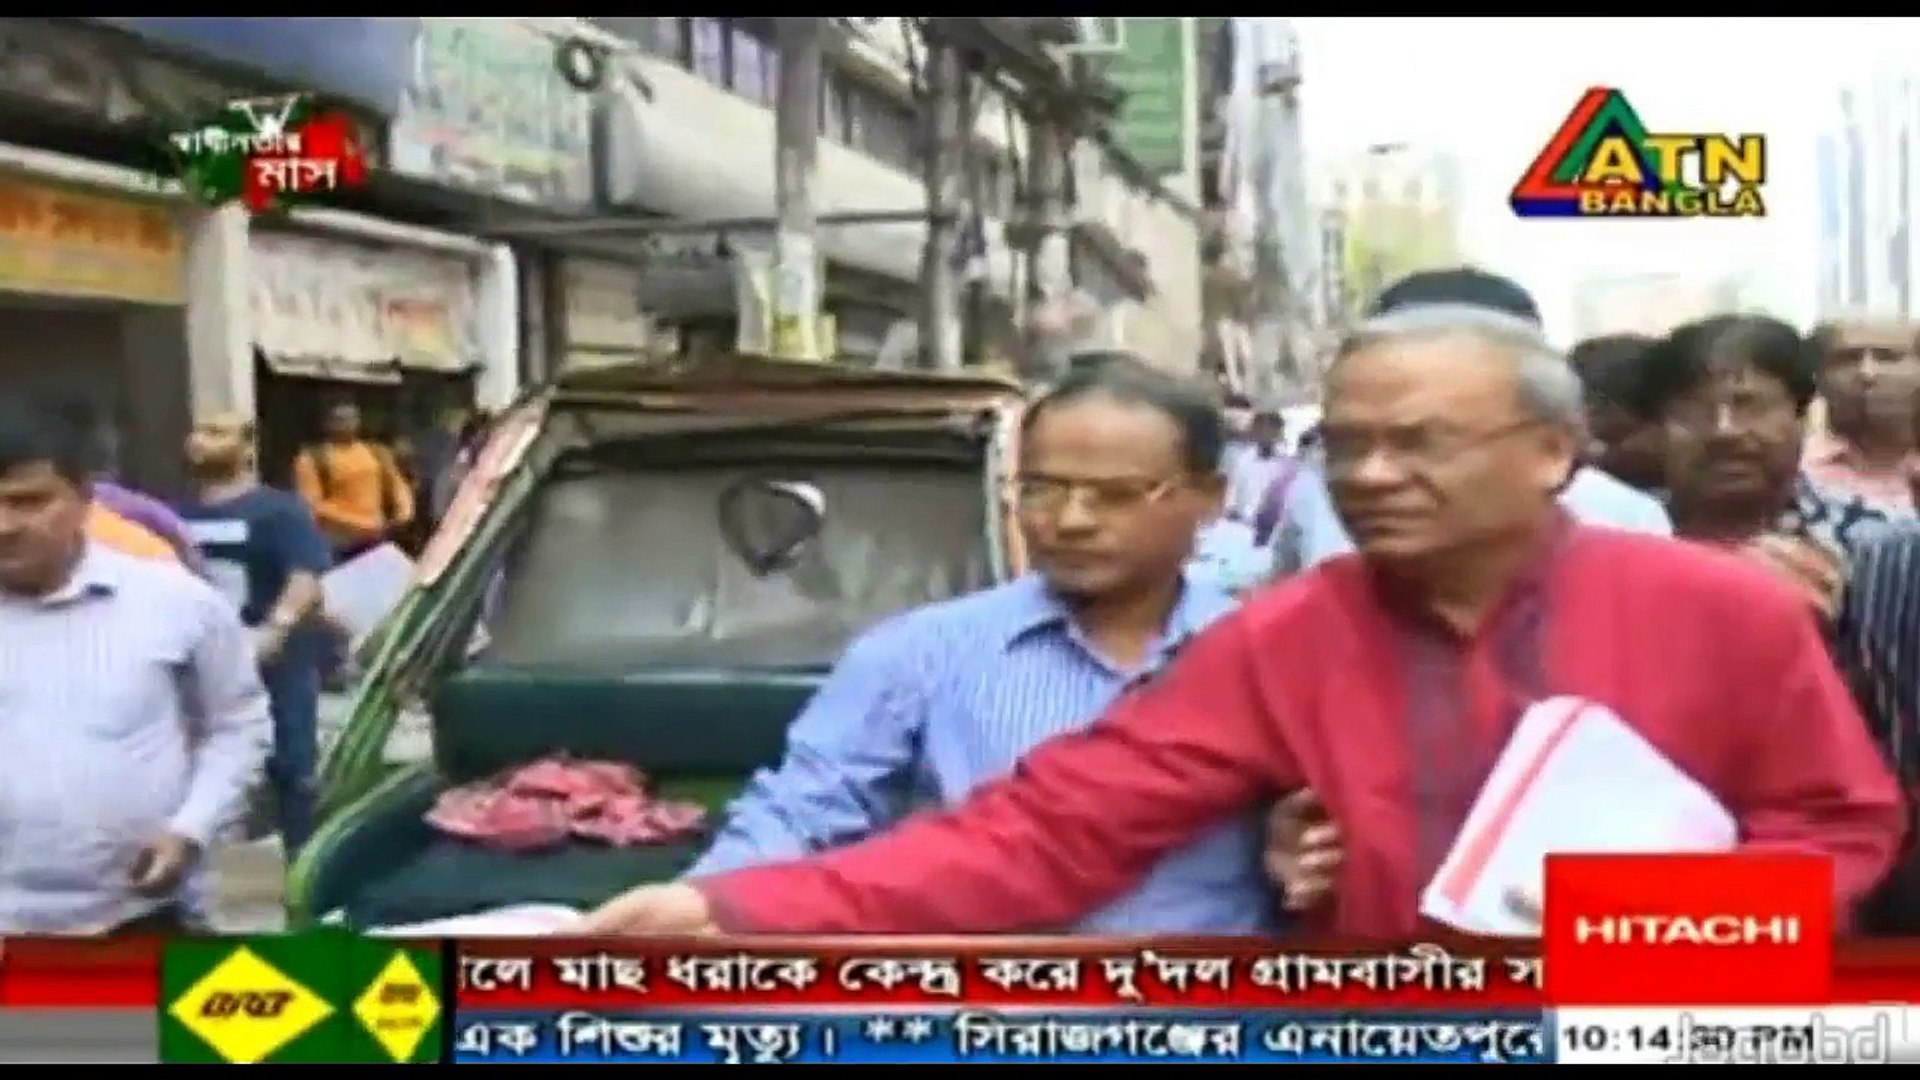 news today 6 March 2017 atn bangla news bangladesh news today bangla bd news